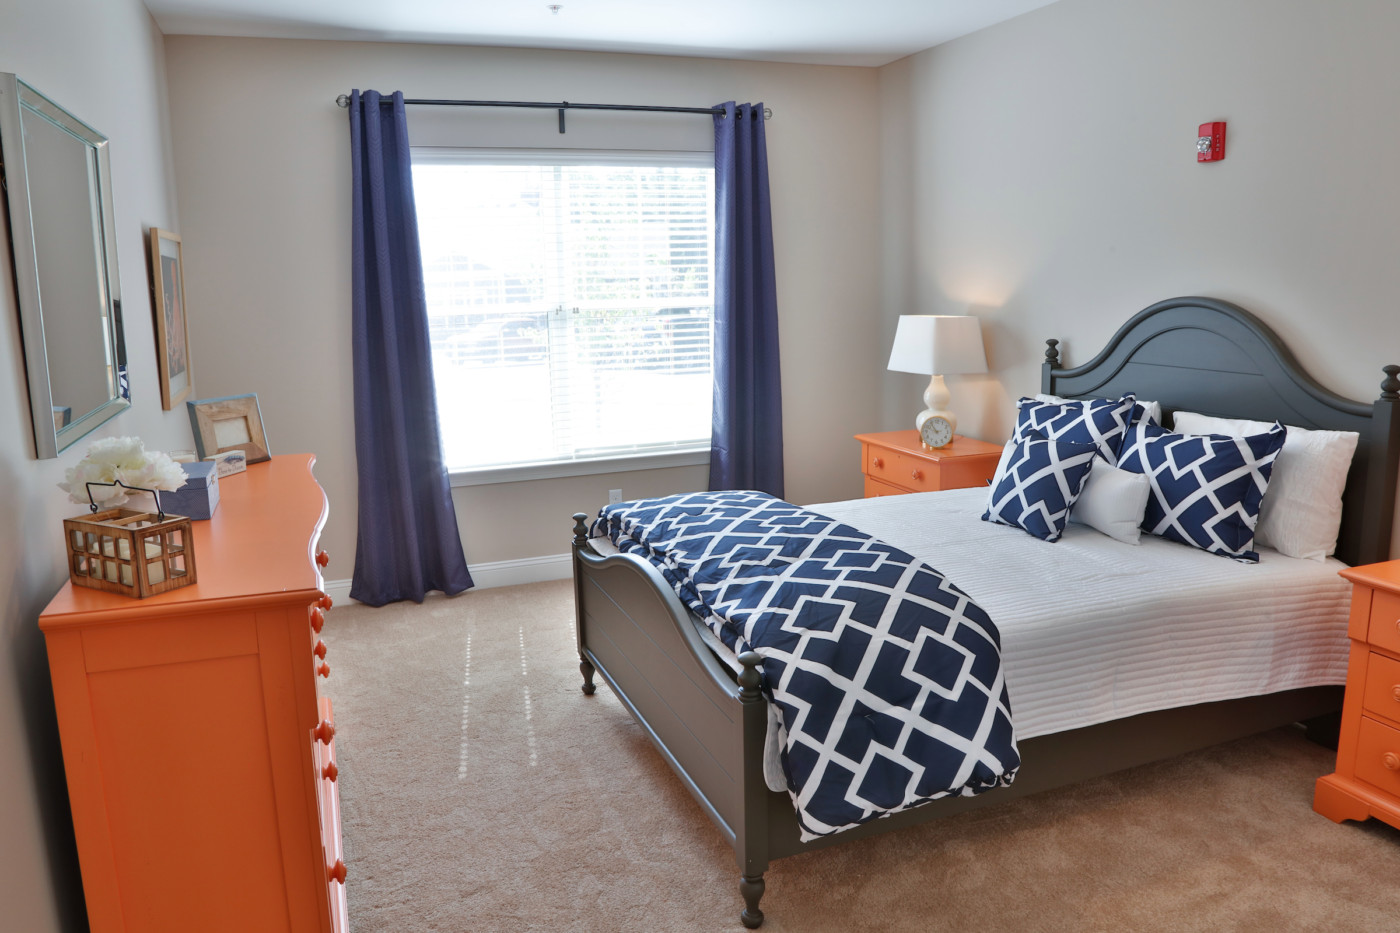 bedroom with orange side tables and dresser